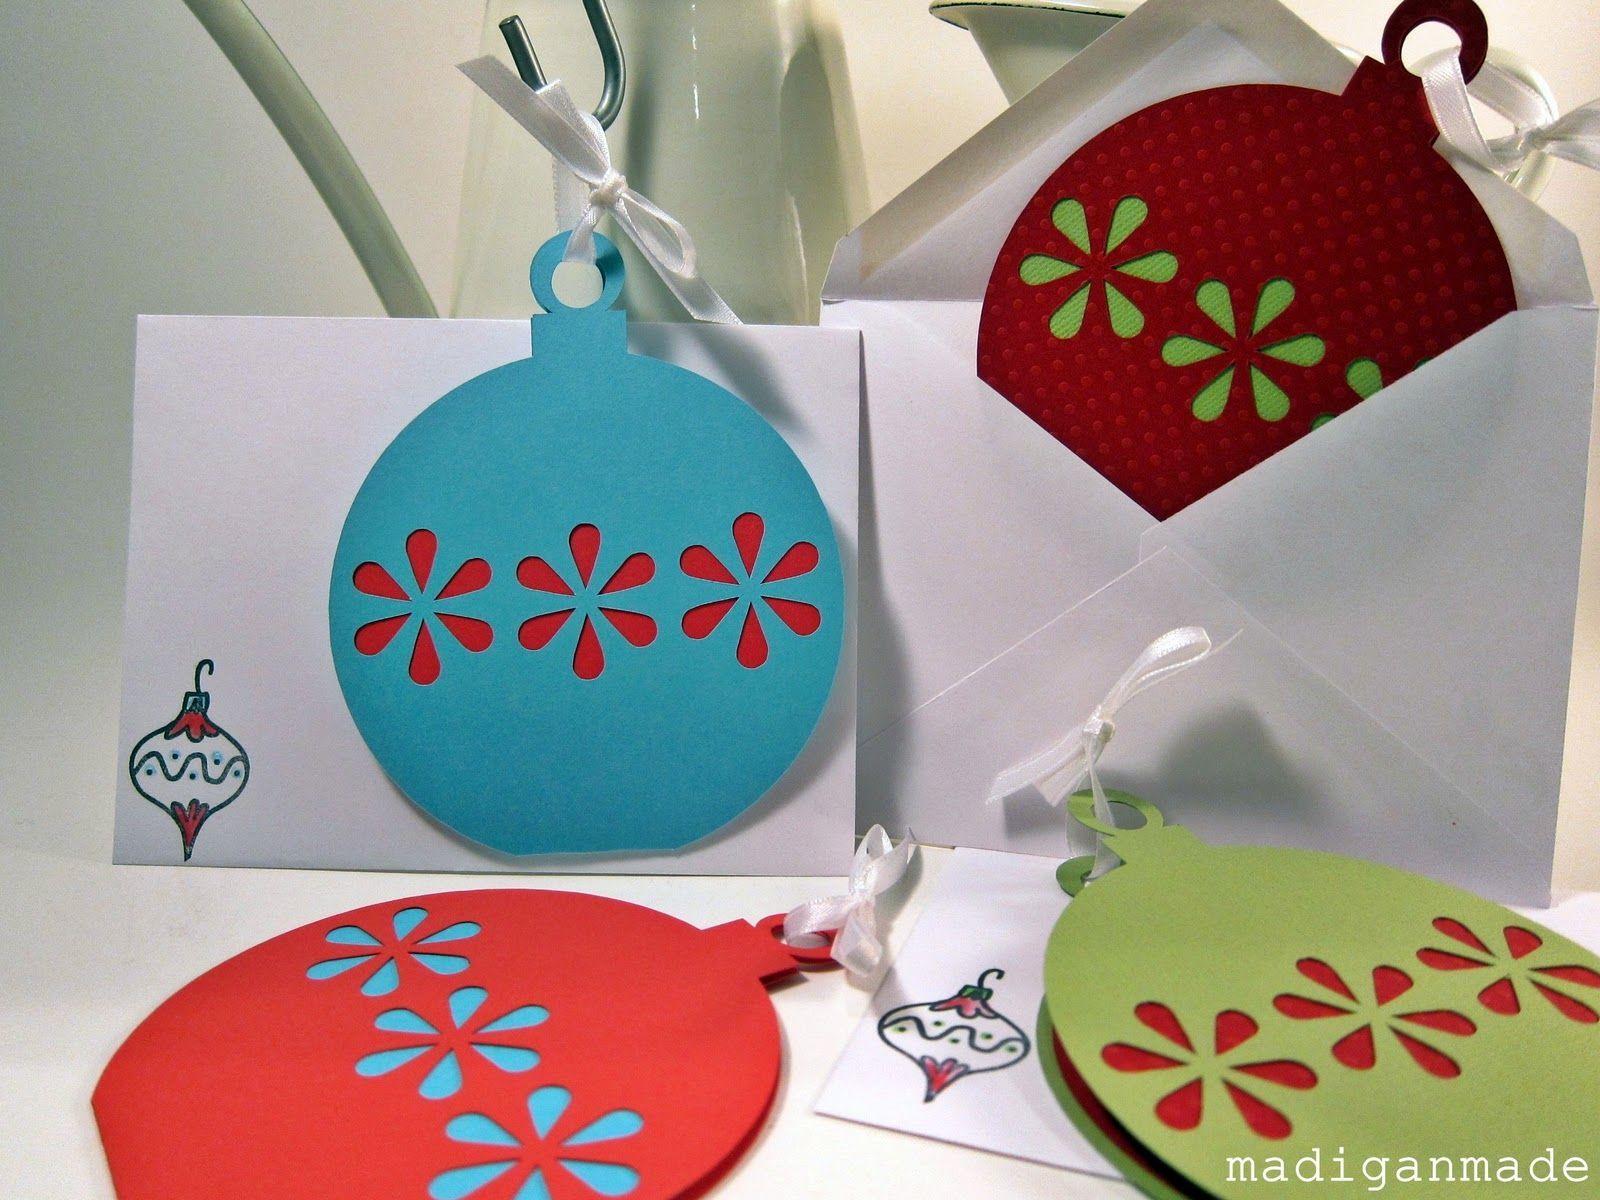 Paper Craft Christmas Card Ideas Part - 29: Find This Pin And More On Cards / Paper Craft.